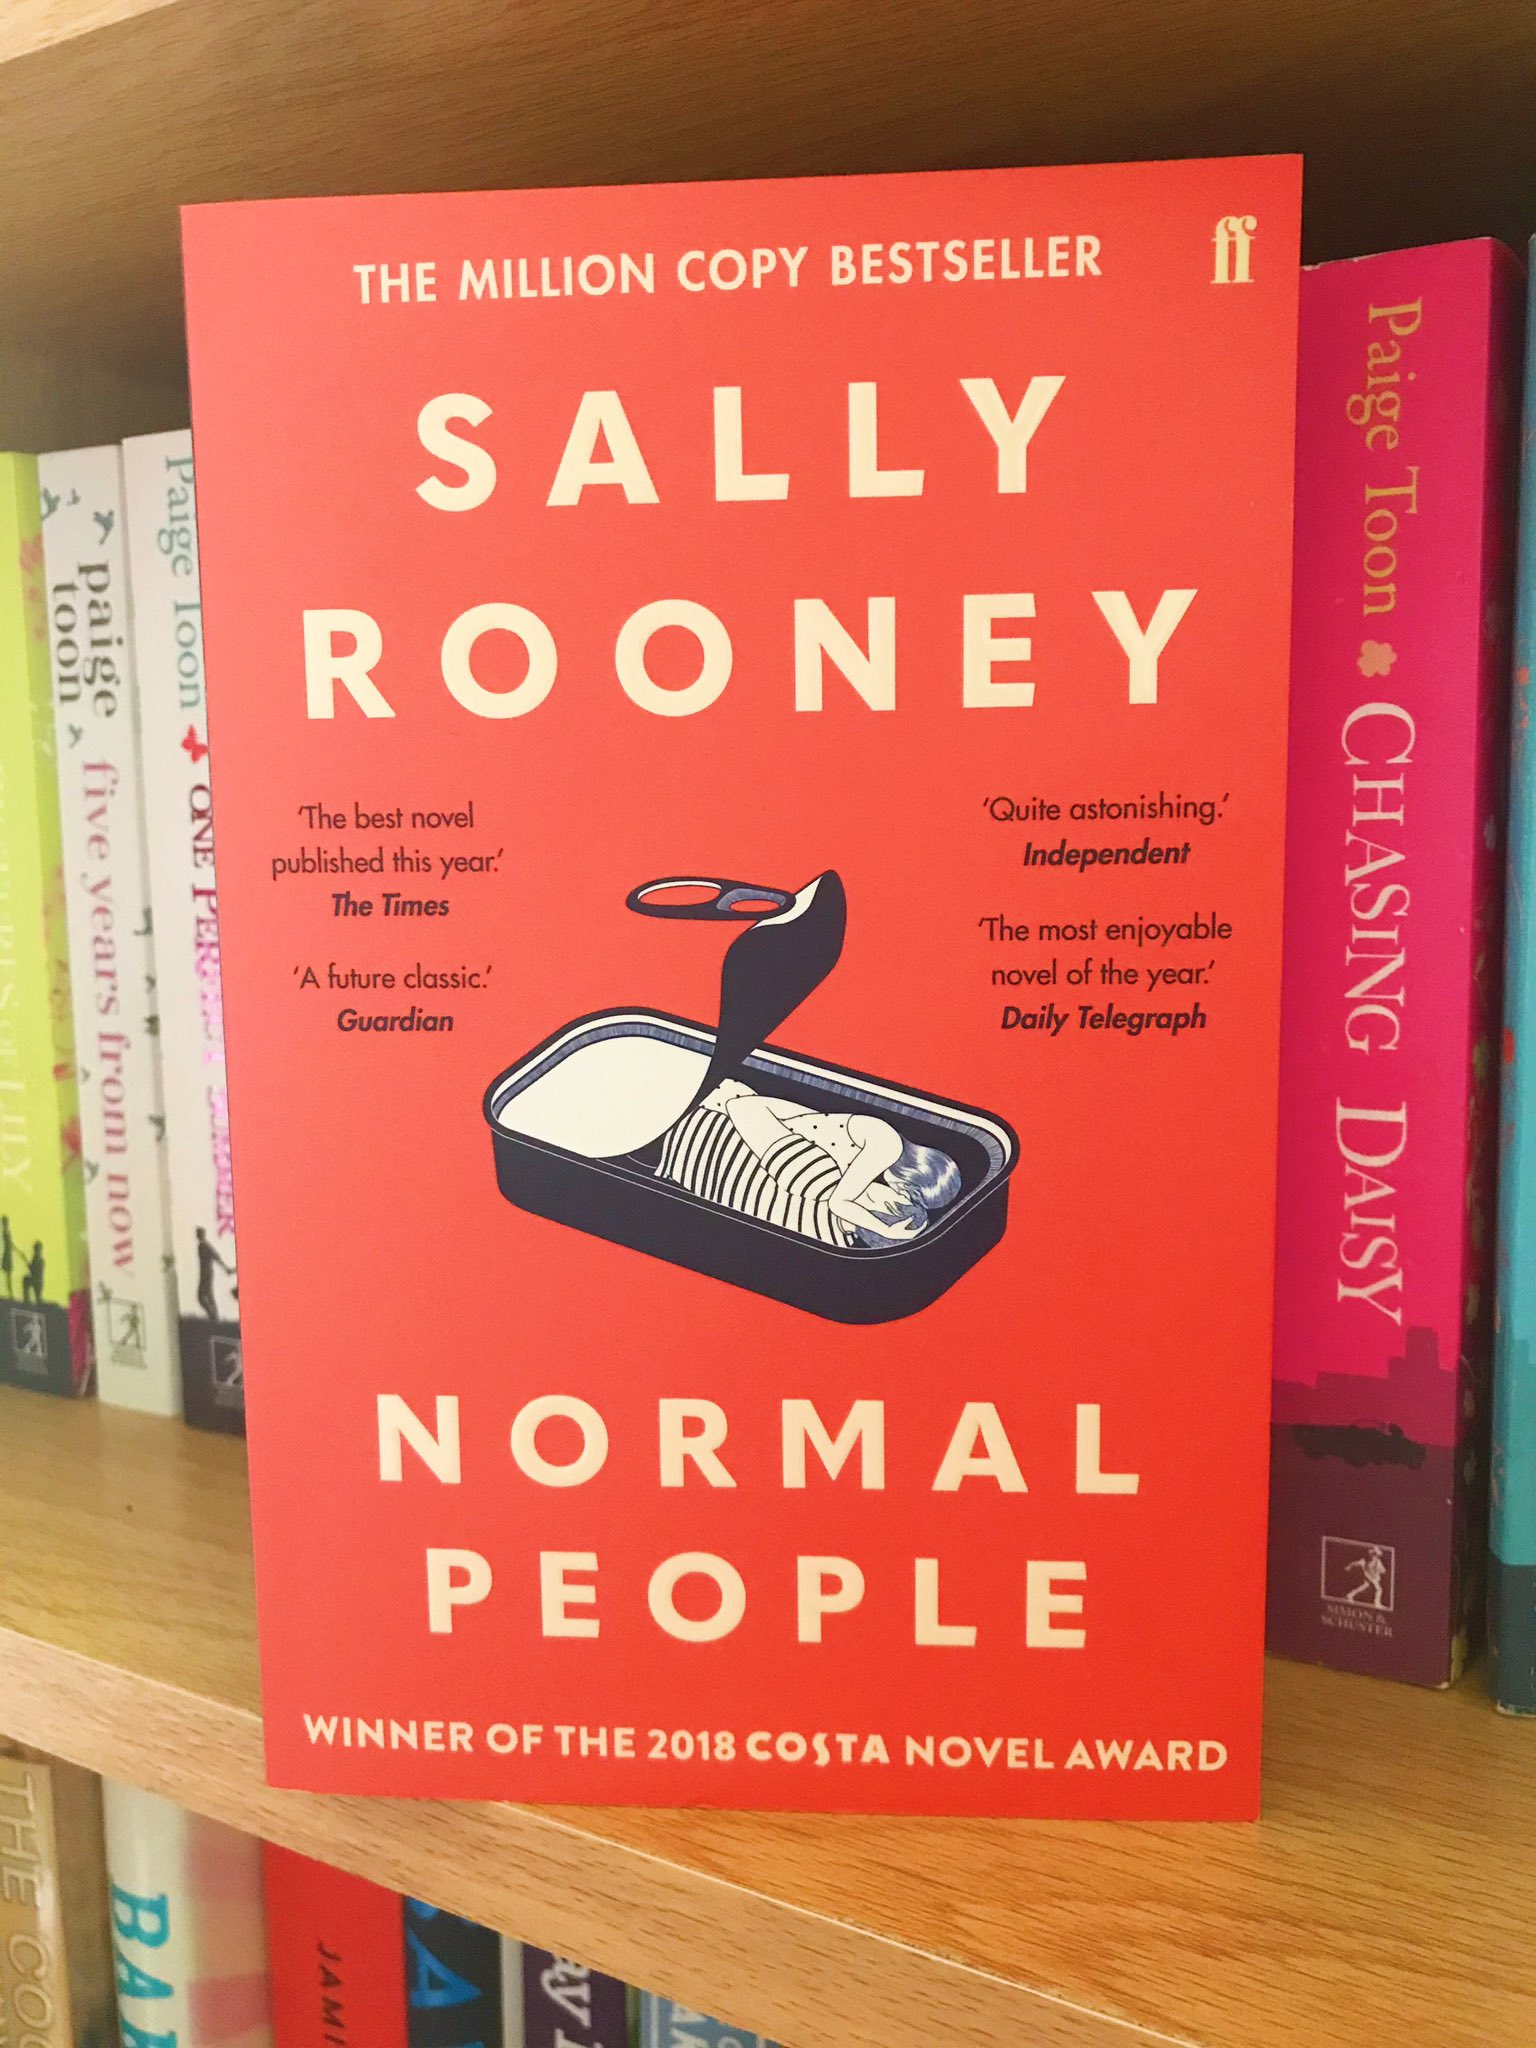 Normal People by Sally Rooney on bookshelf